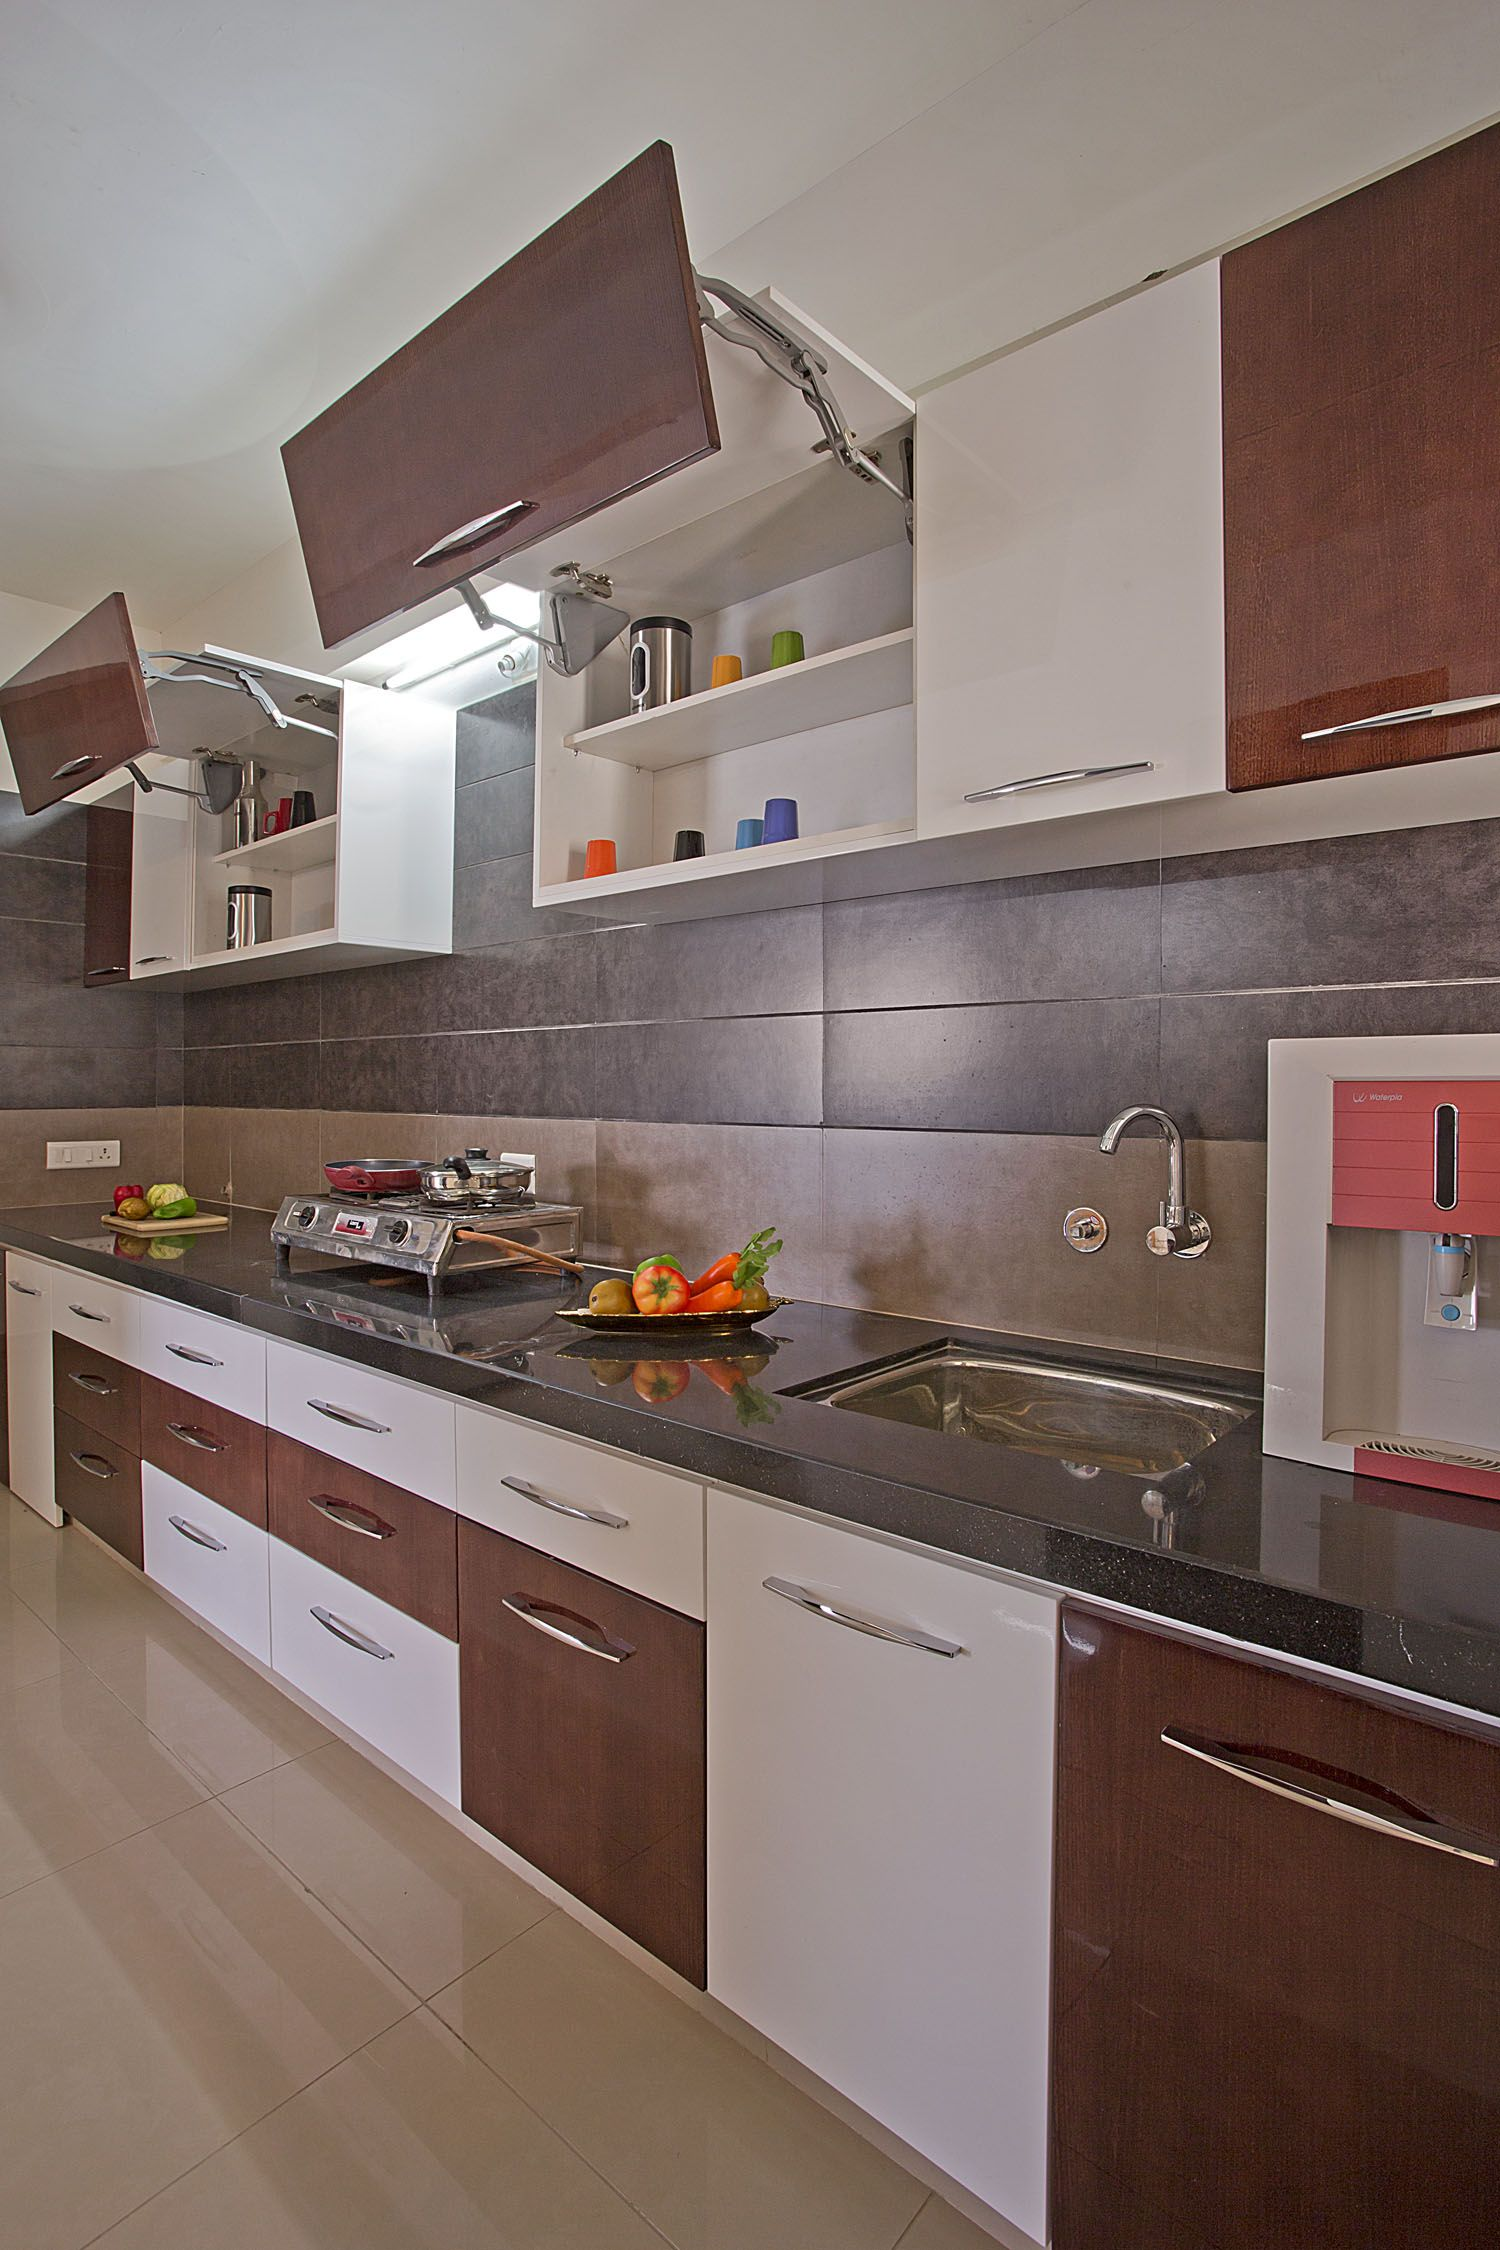 What Is An L Shaped Kitchen Kitchen Modular Modular Kitchen Cabinets Kitchen Cabinet Layout